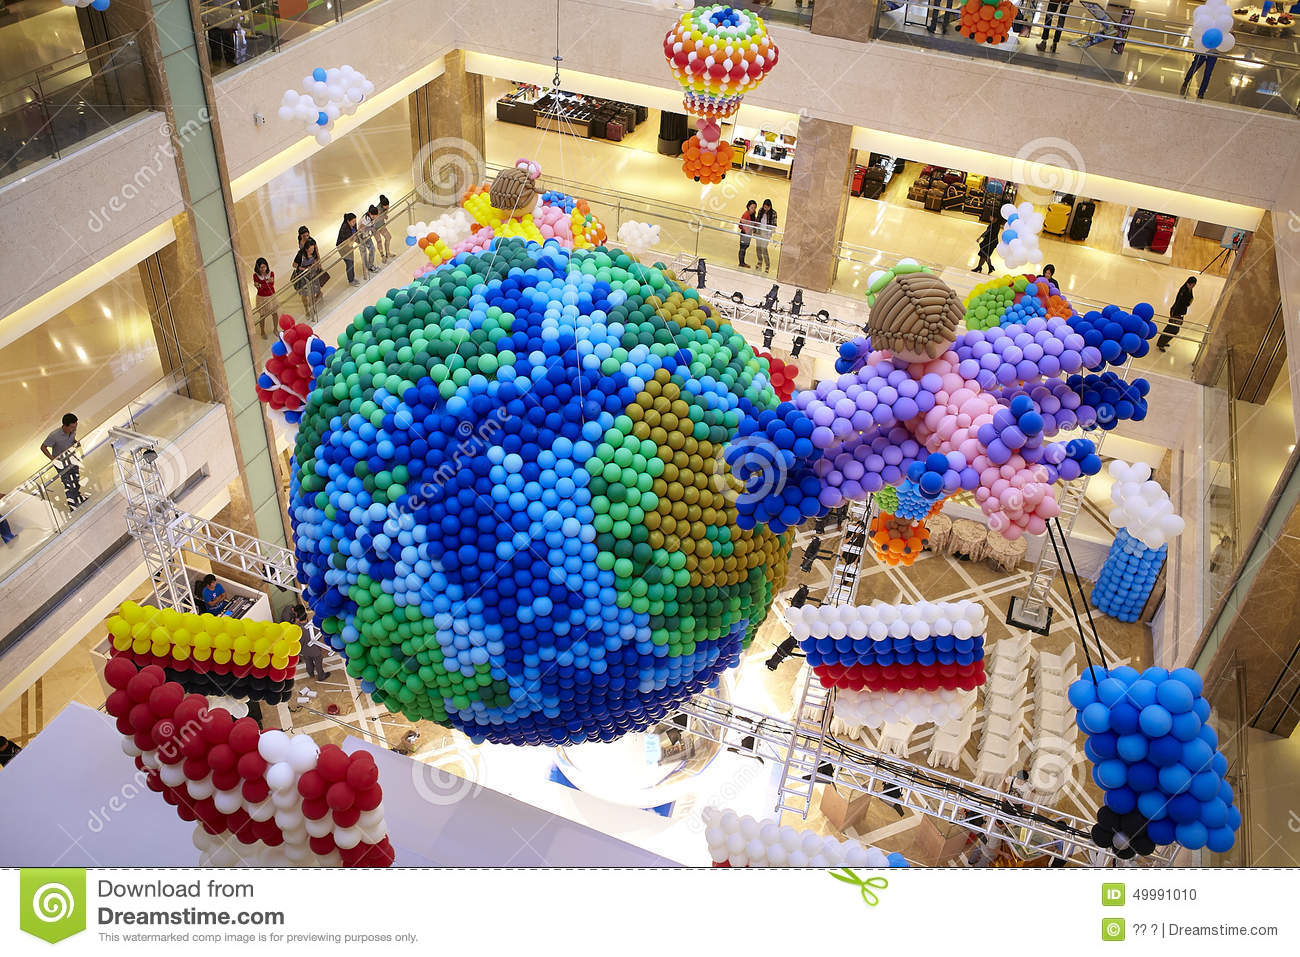 Balloons Decoration At Mall Gallery Earth Country Flag Fire Balloon